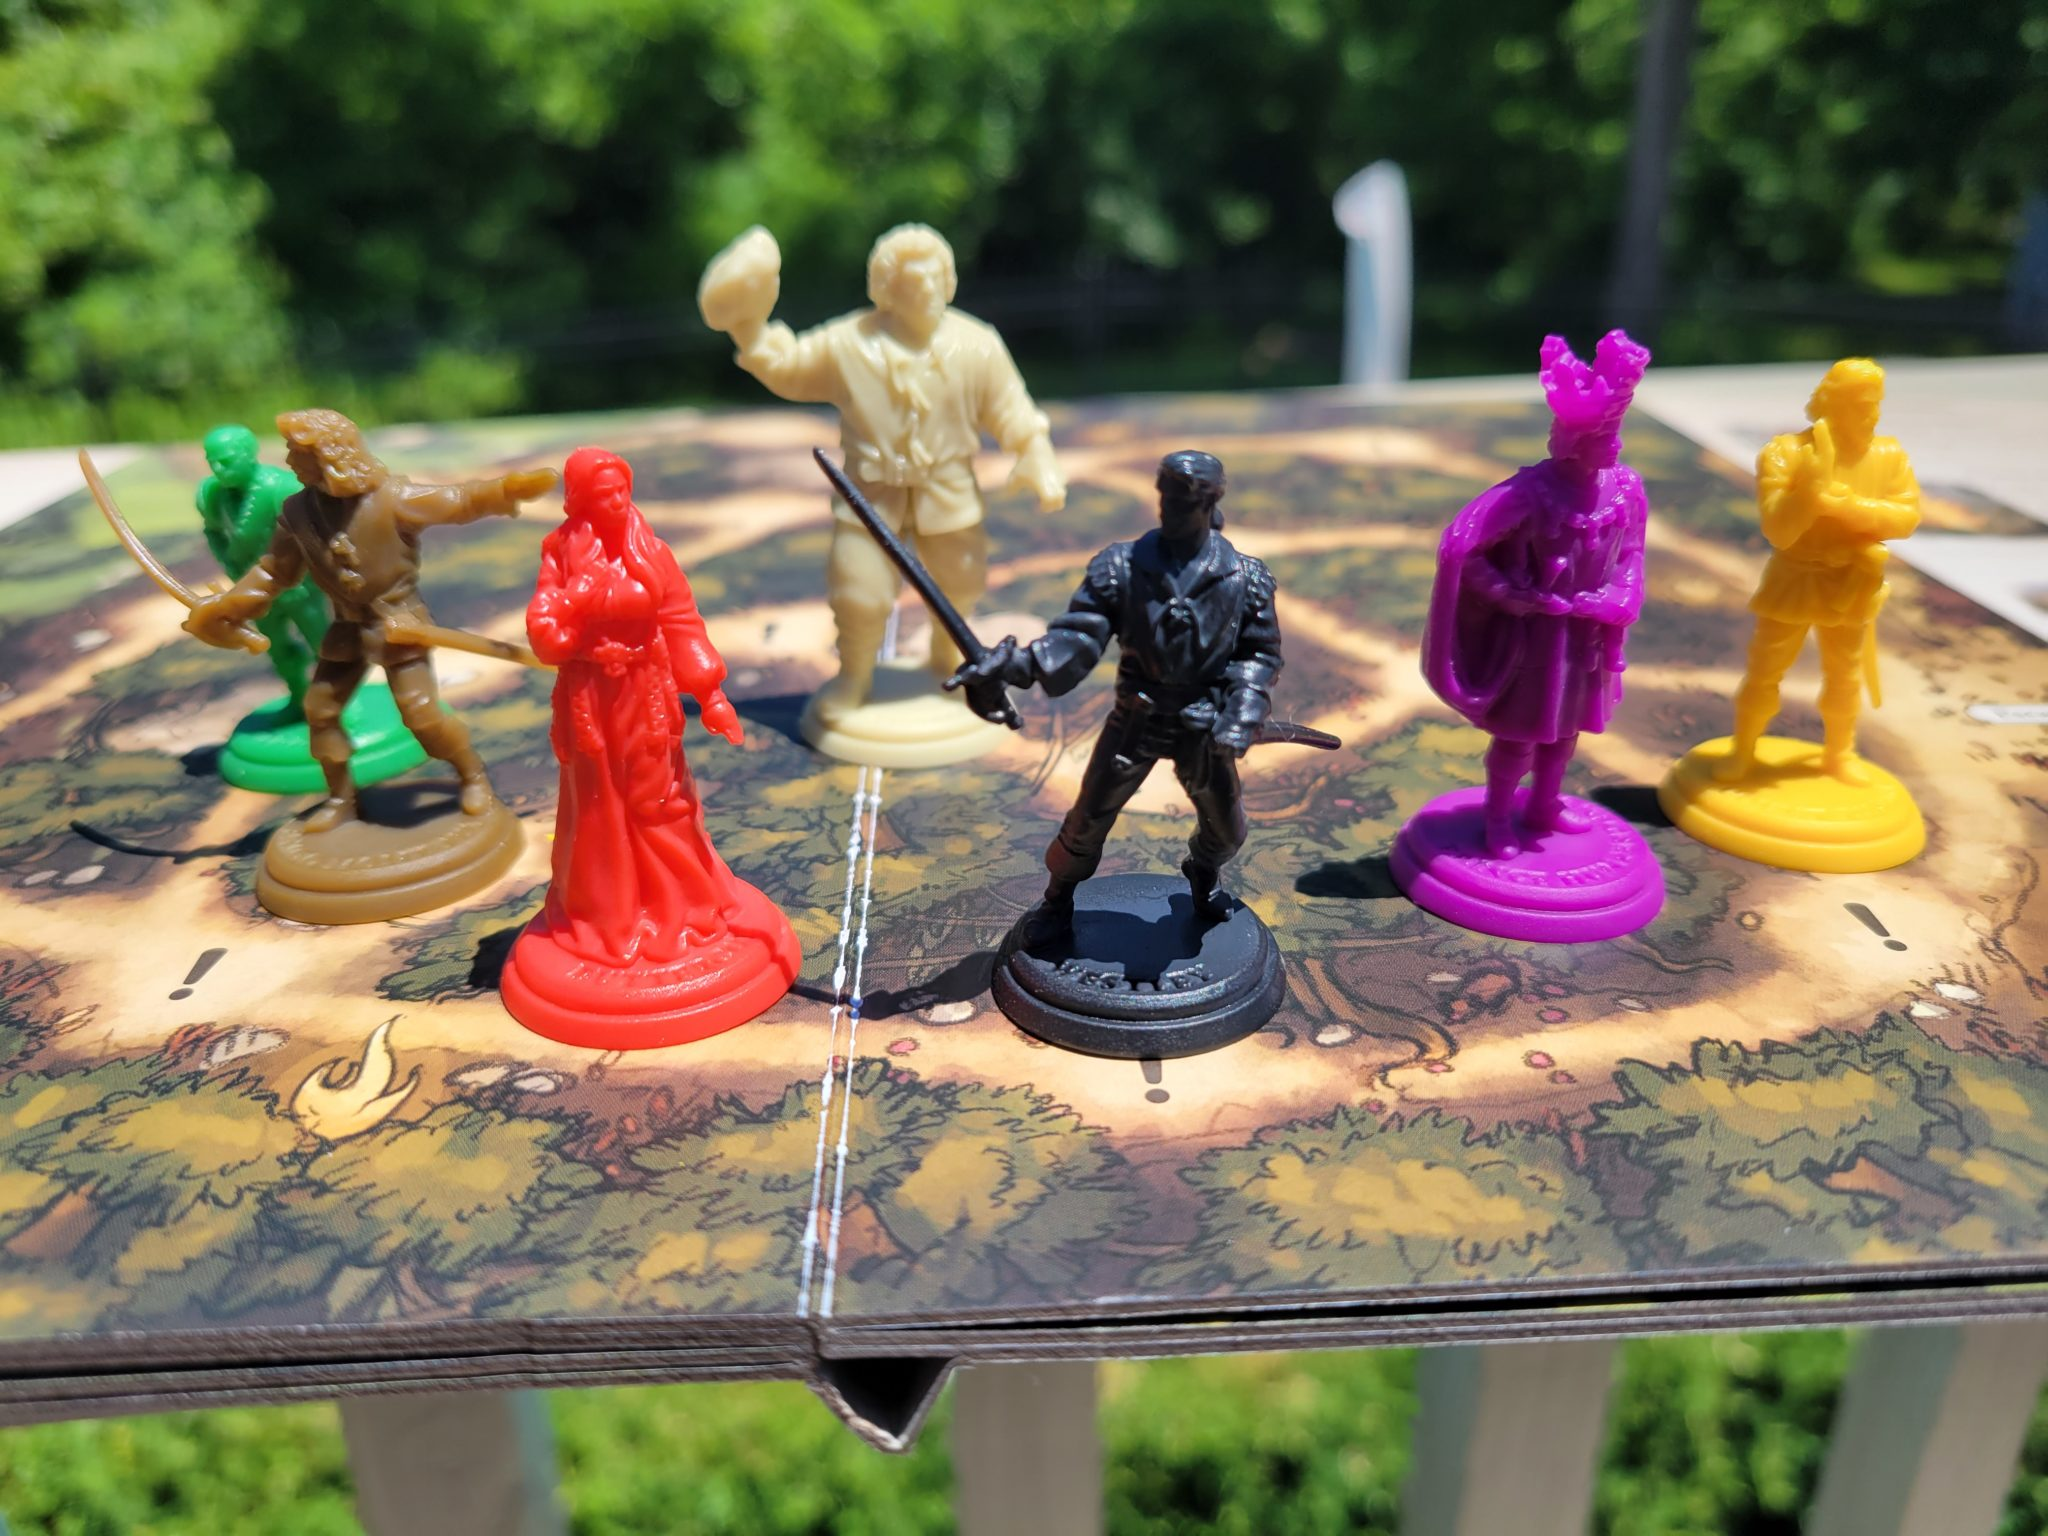 The Princess Bride Adventure Book Game minis and board